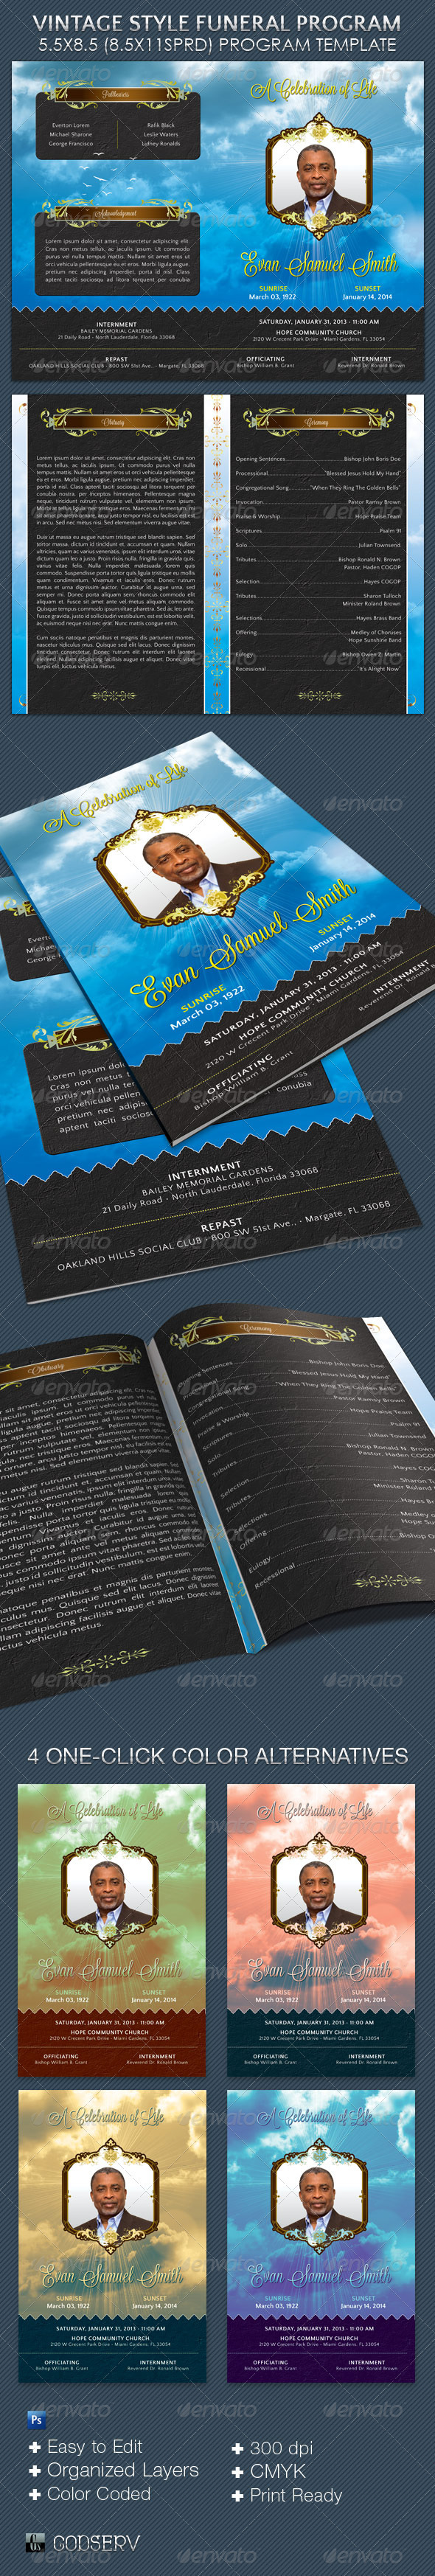 Vintage Style Funeral Program Template - Informational Brochures